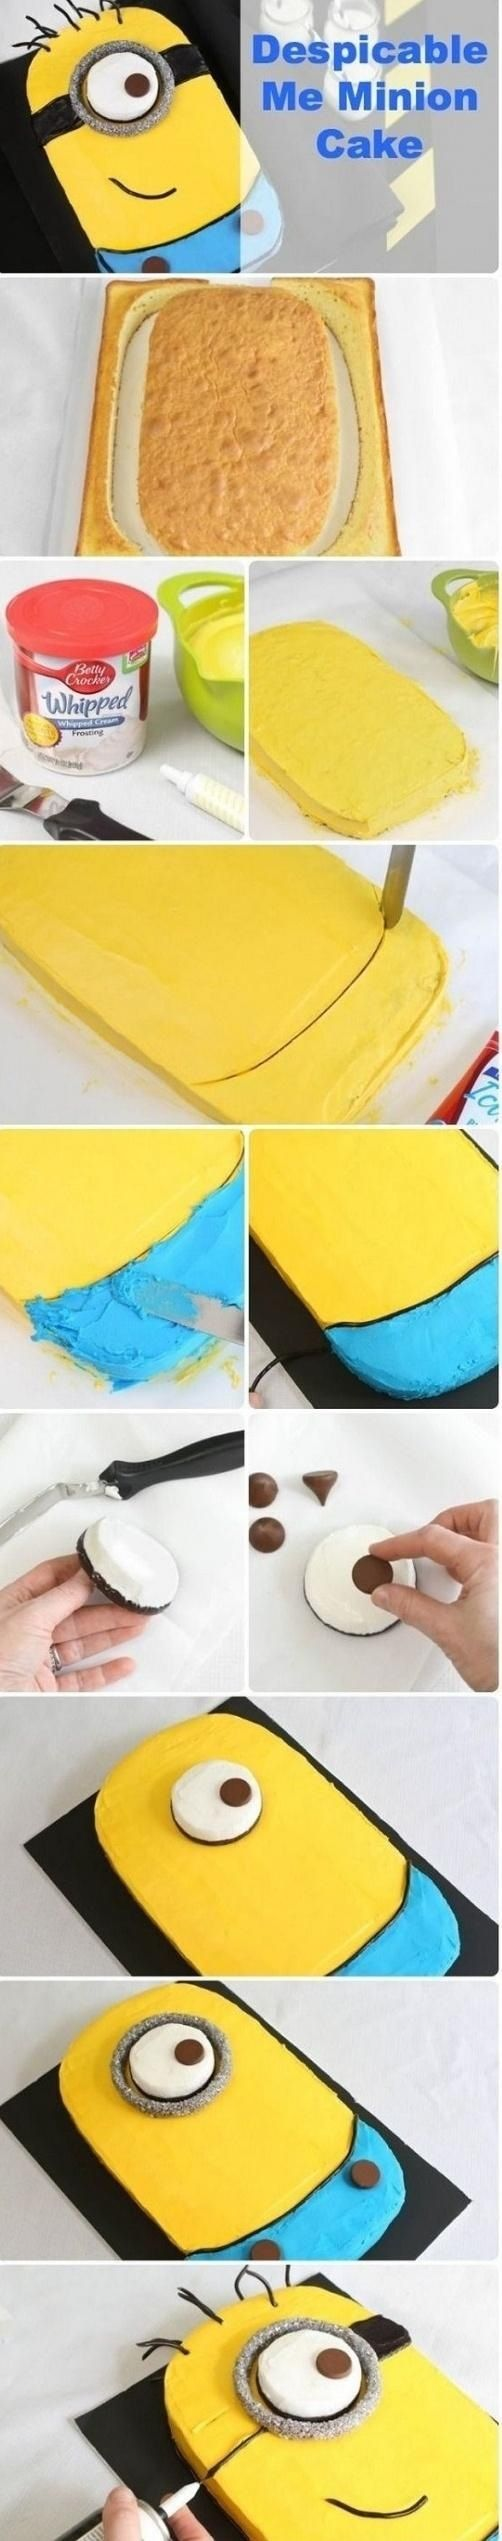 Minion Cake. Great idea for Despicable Me parties!